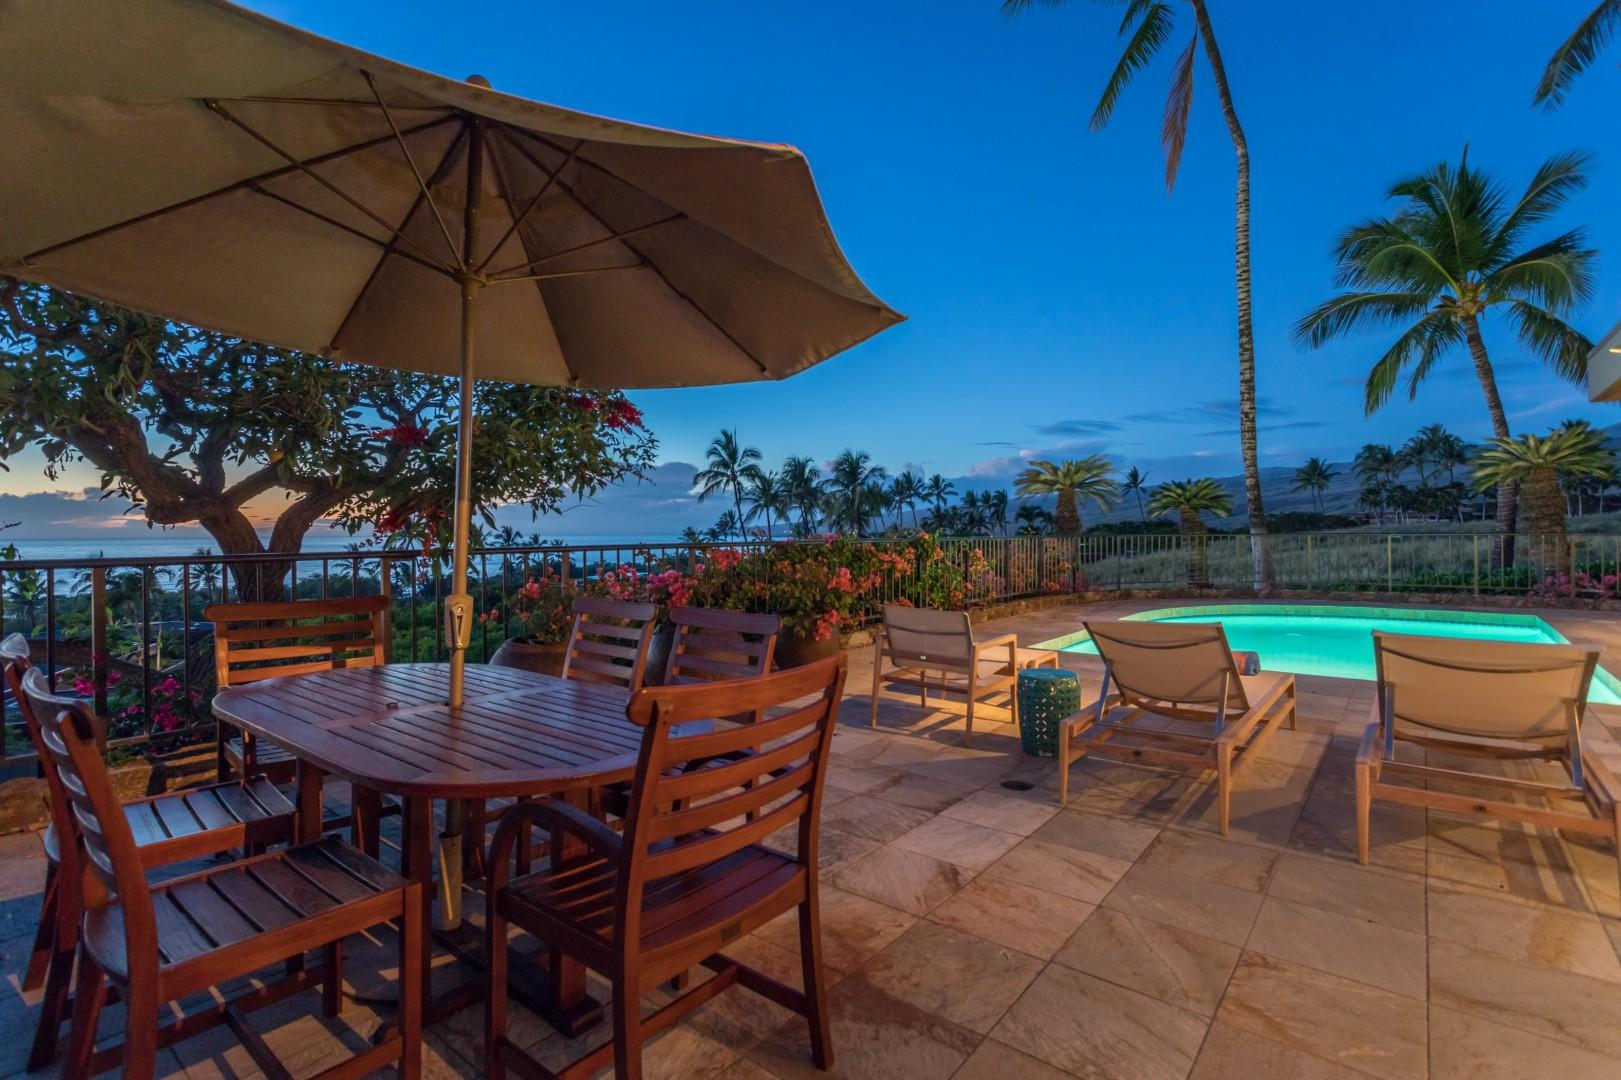 Large Outdoor Dining Set w/Umbrella Overlooking the Pacific Ocean & Kohala Coastline.